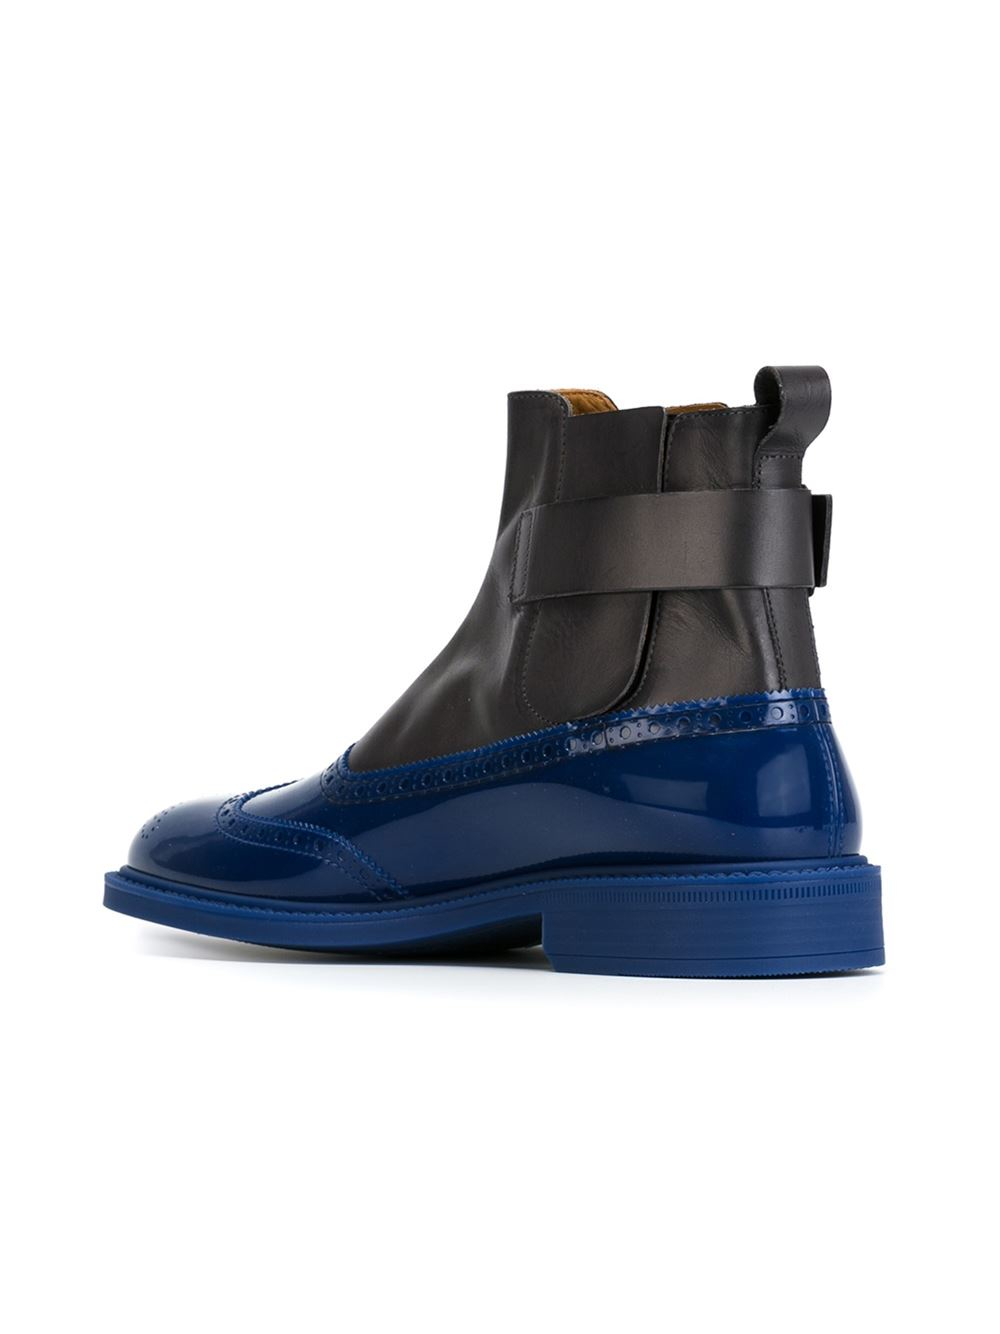 vivienne westwood brogue detailing panelled boots in gray